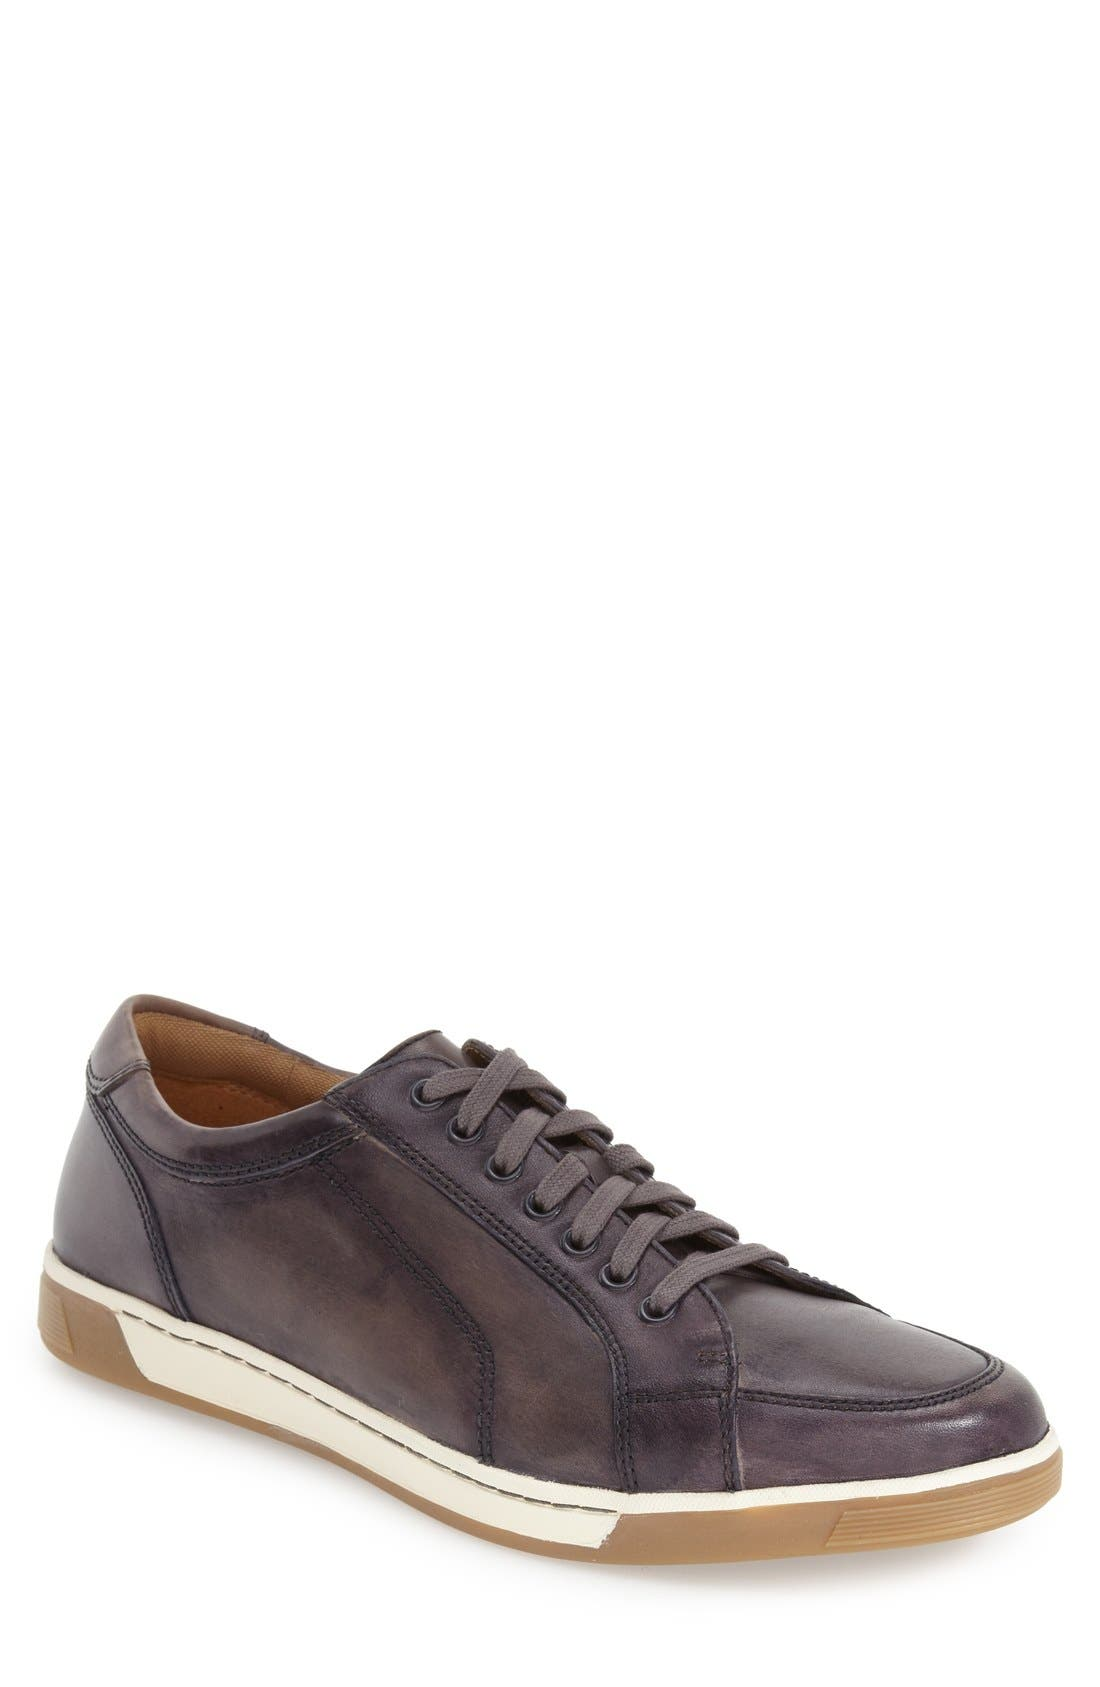 Main Image - Cole Haan 'Vartan Sport Oxford' Sneaker (Men)